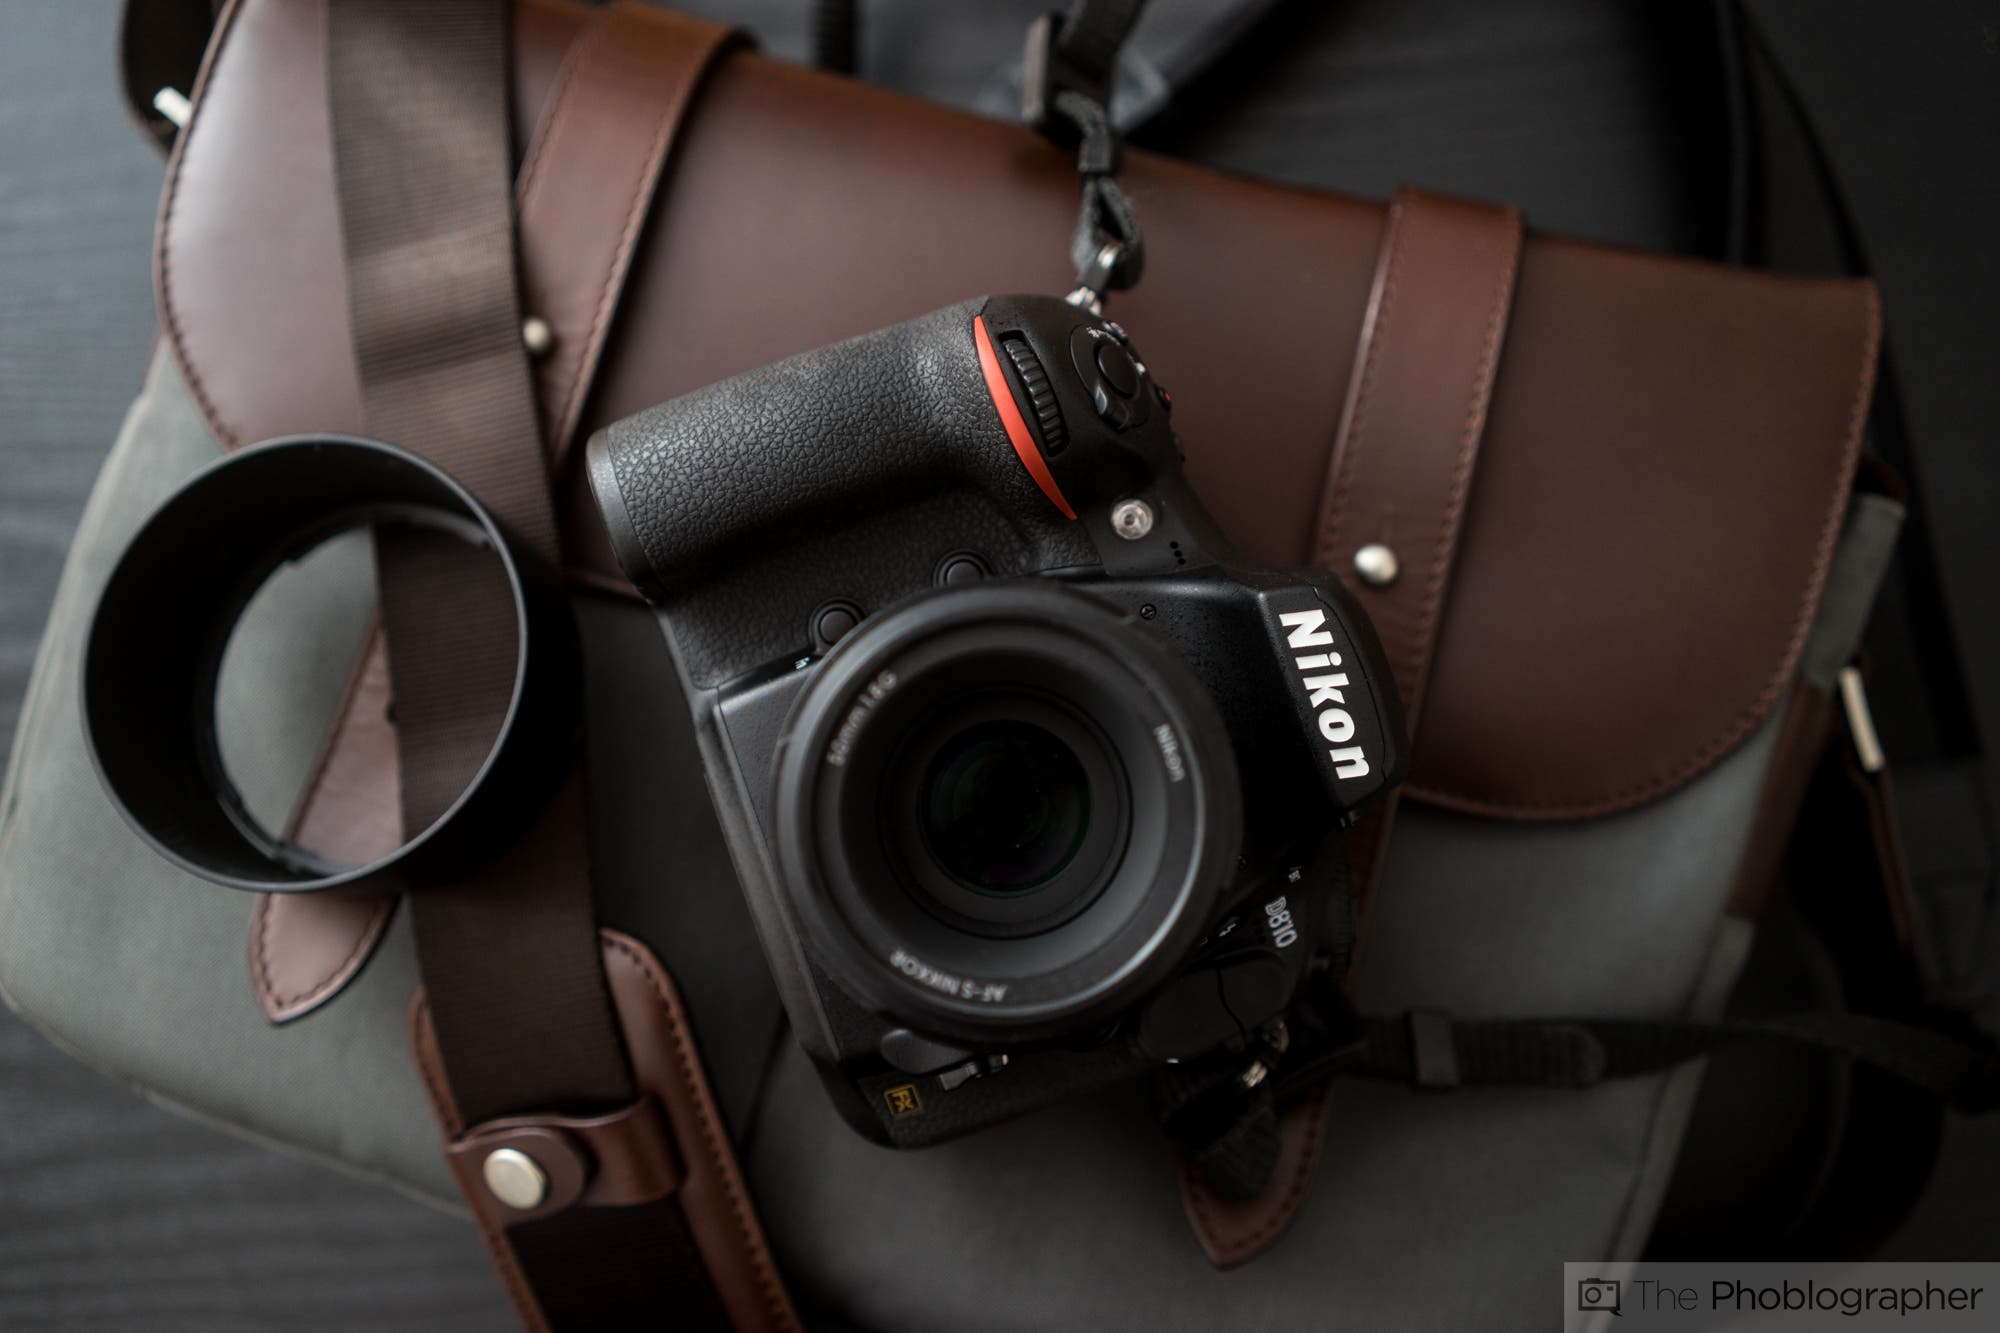 Cheap Photo: Some Great Savings On Refurbished Cameras, Lenses, and More